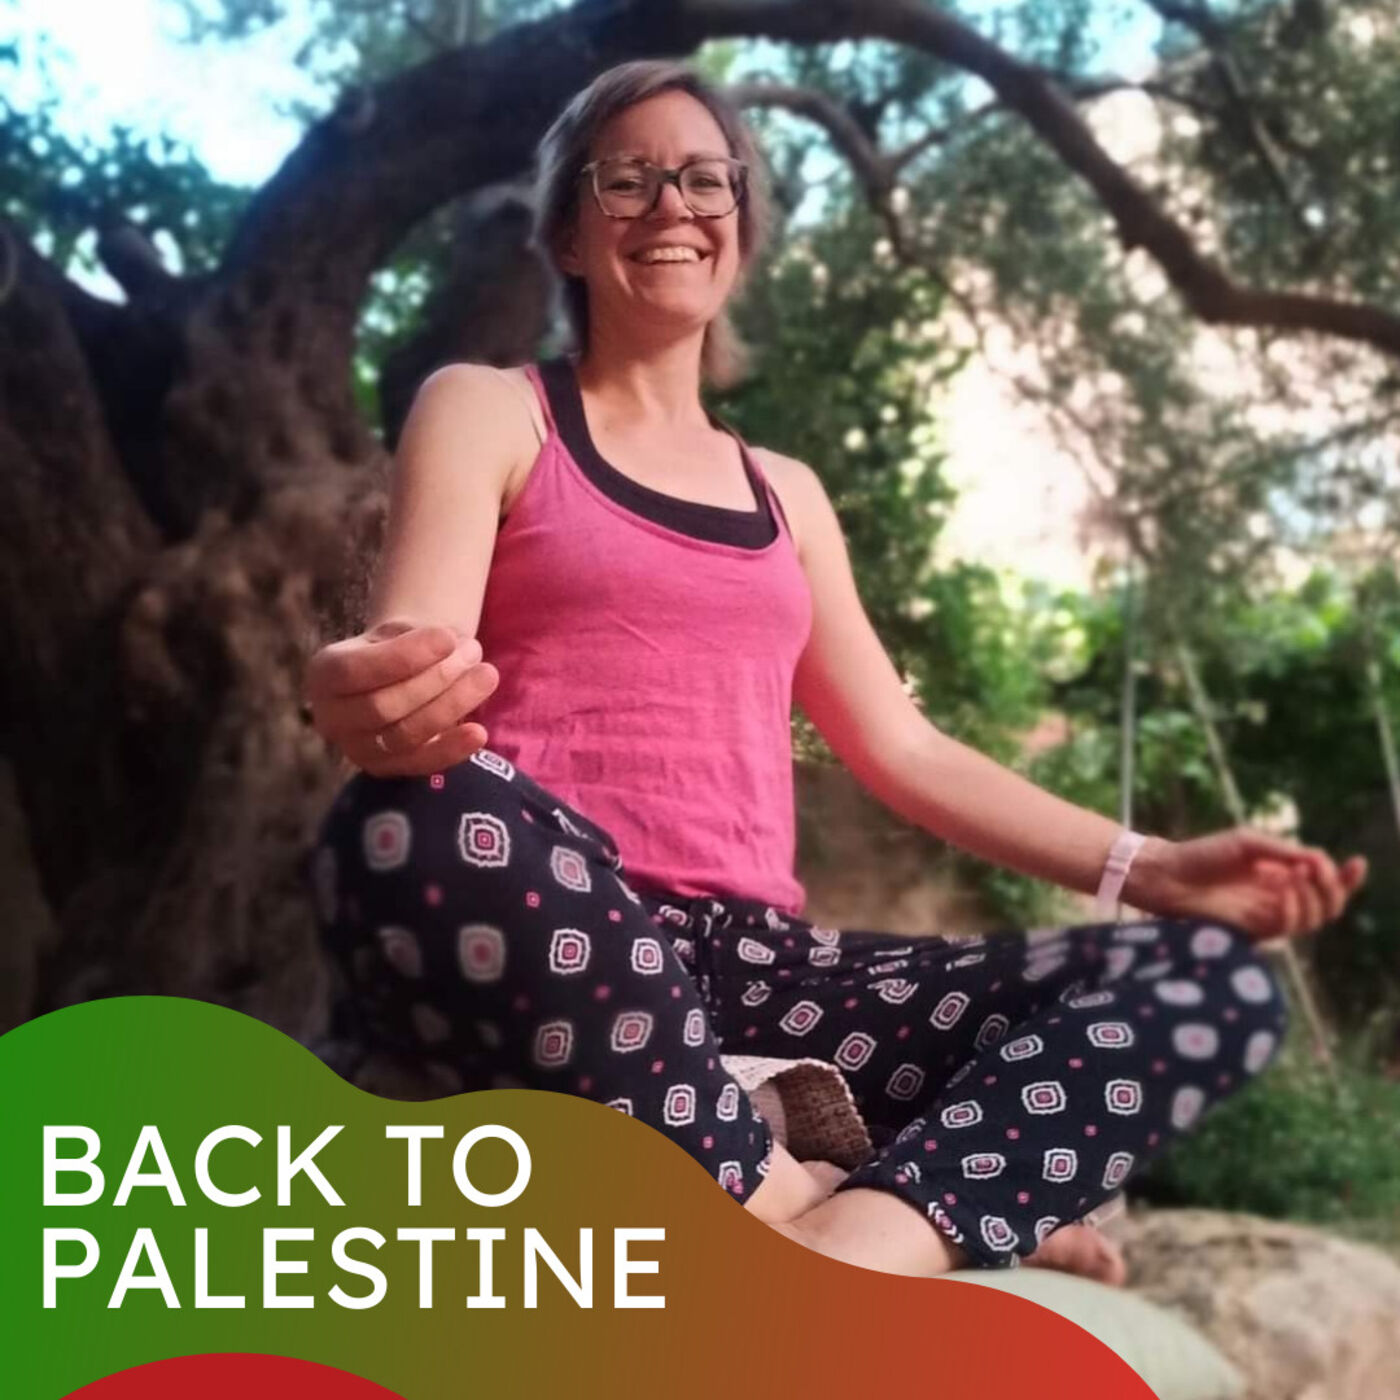 Back to Palestine and why Palestine